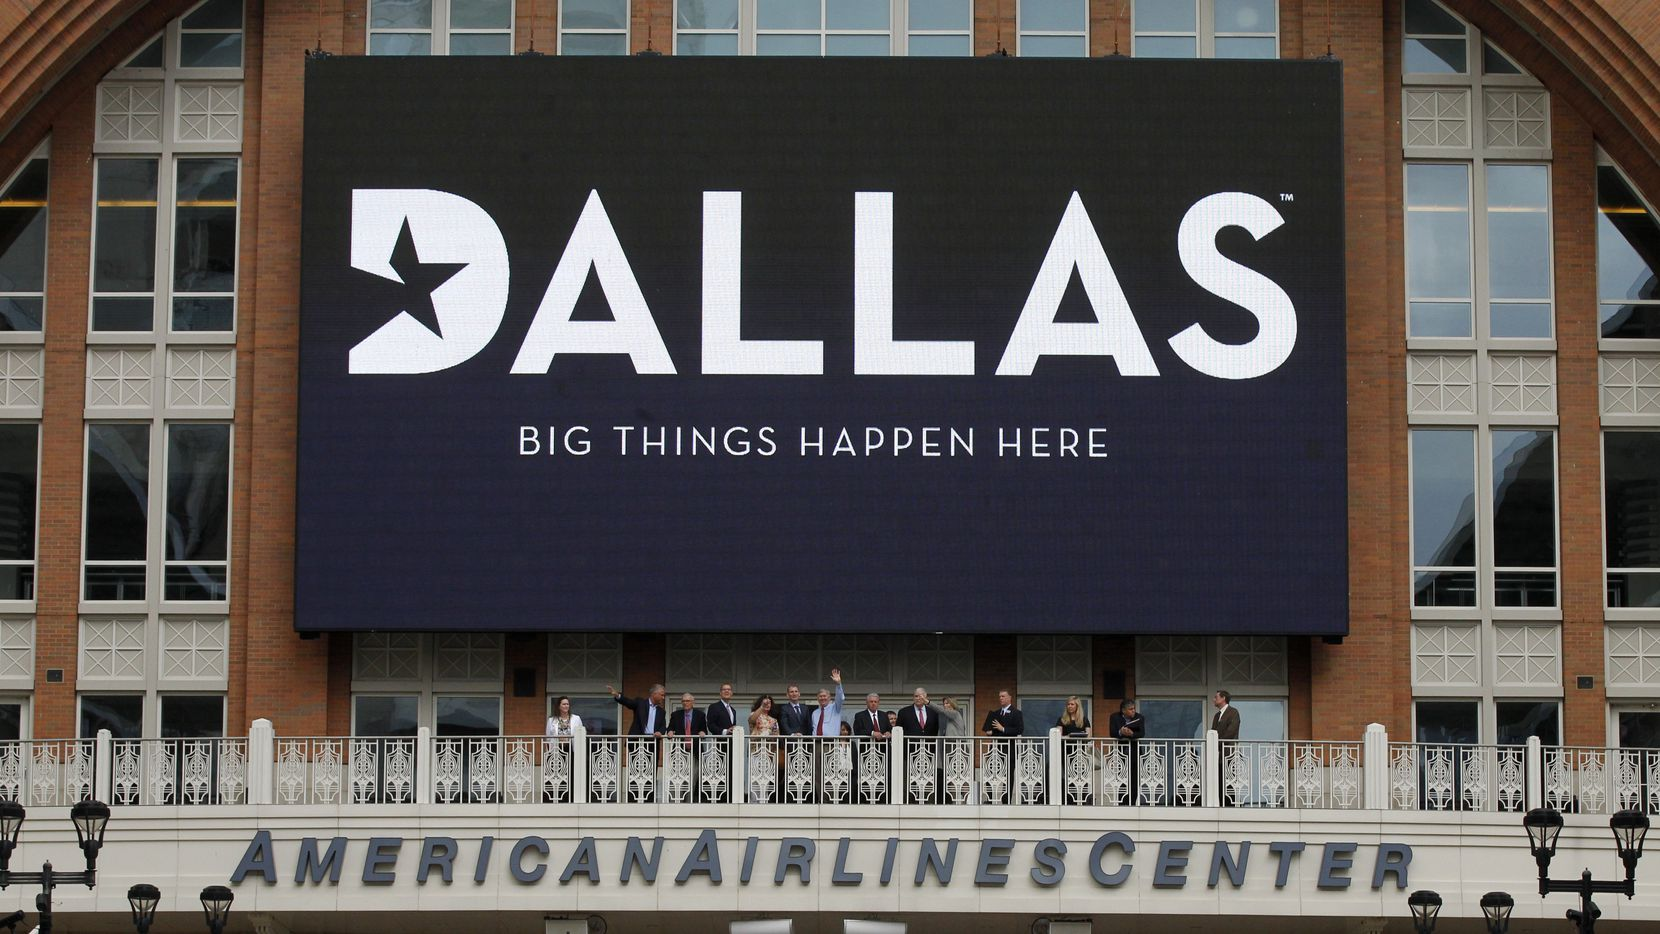 This sign was part of a VisitDallas effort to lure the Republican National Convention to Dallas.